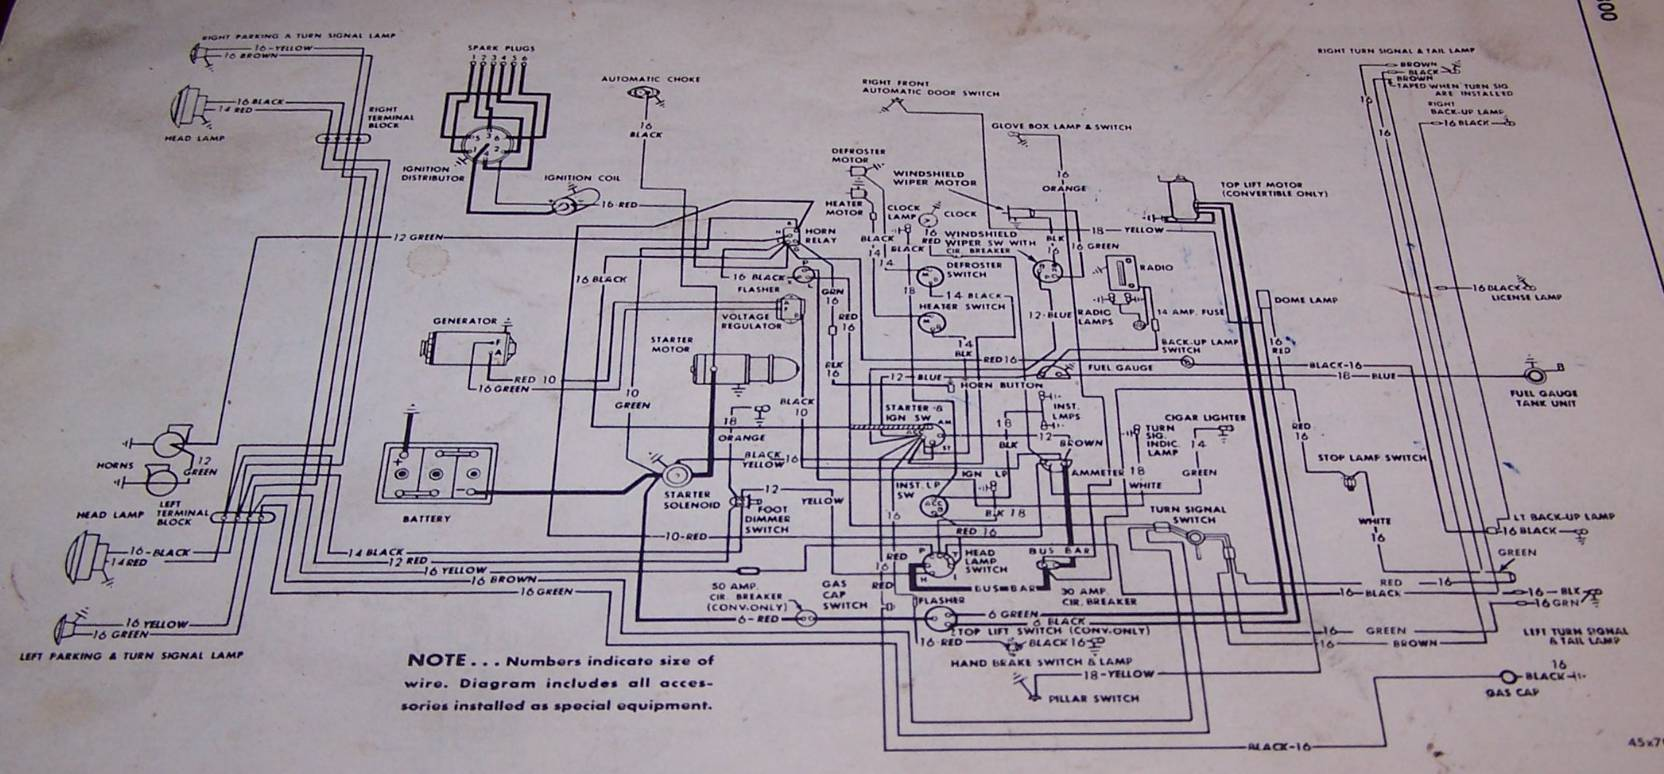 wire2 old mopar information Mopar Ignition Switch Wiring Diagram at readyjetset.co